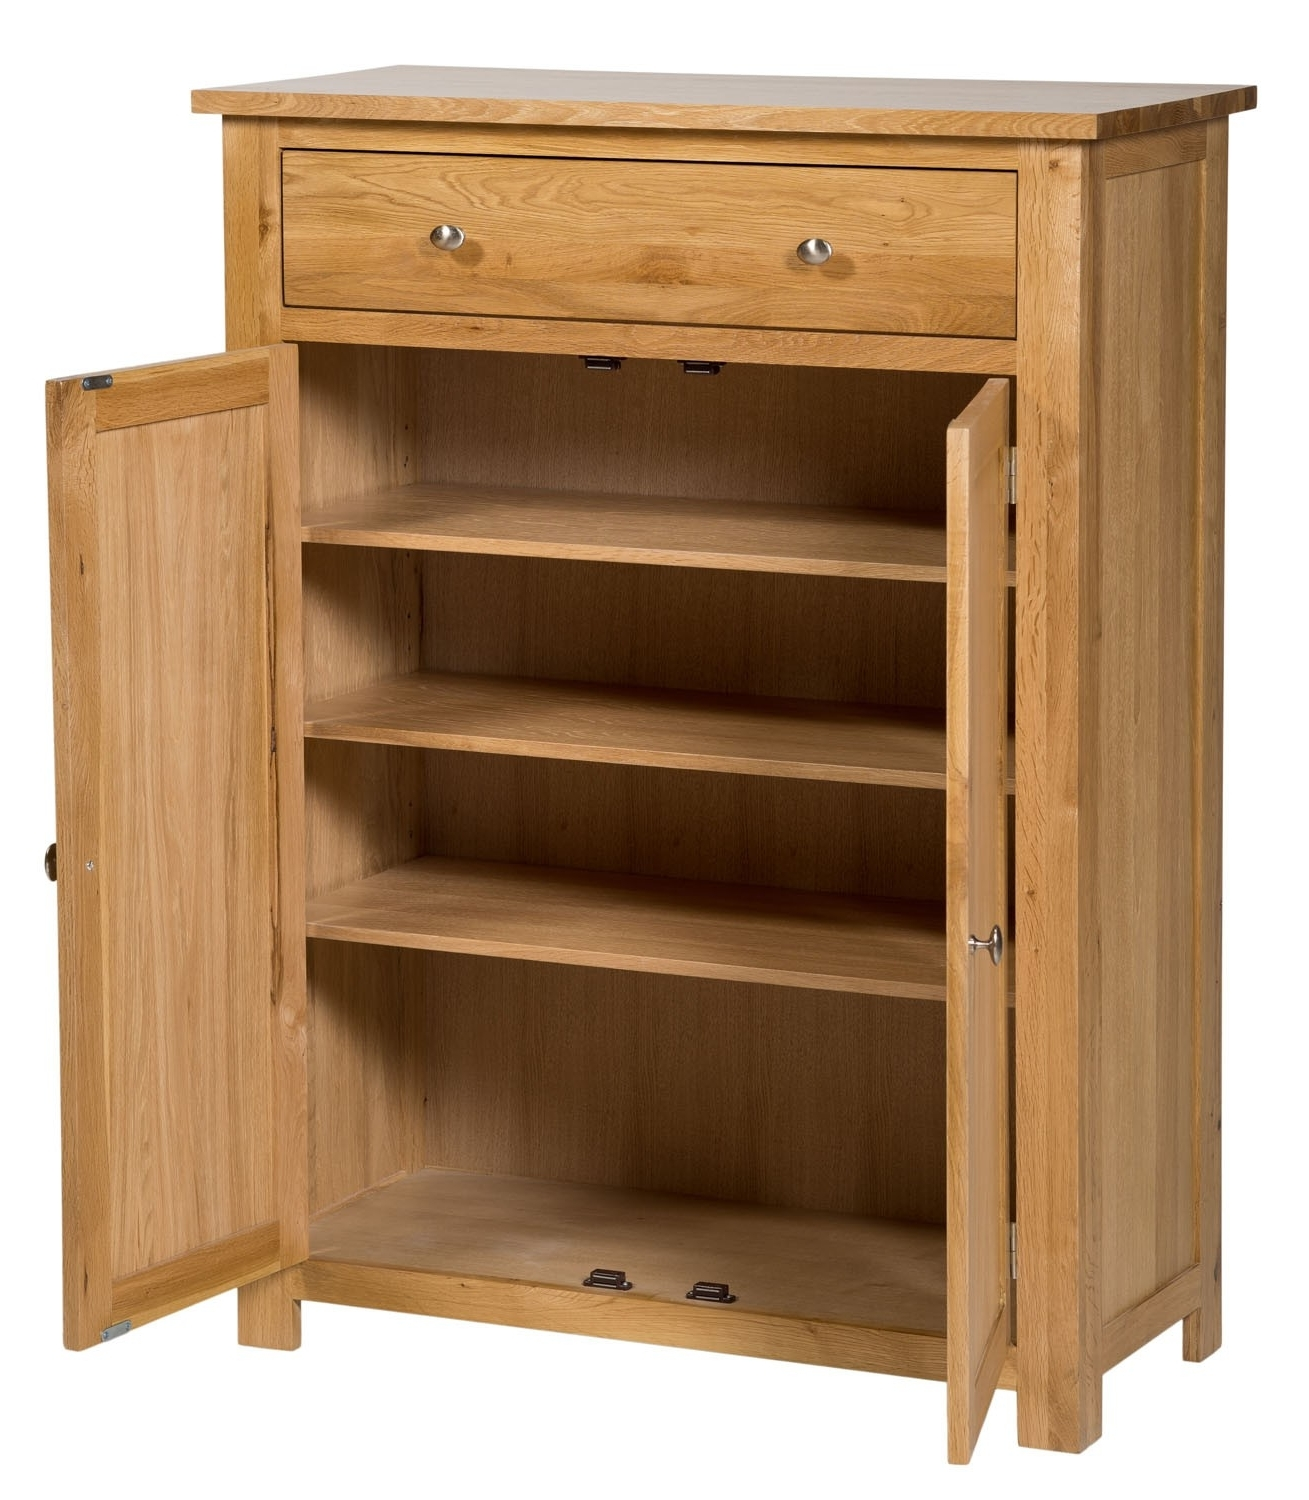 Waverly Oak Storage Cupboard / Shoe Cabinet (View 15 of 15)